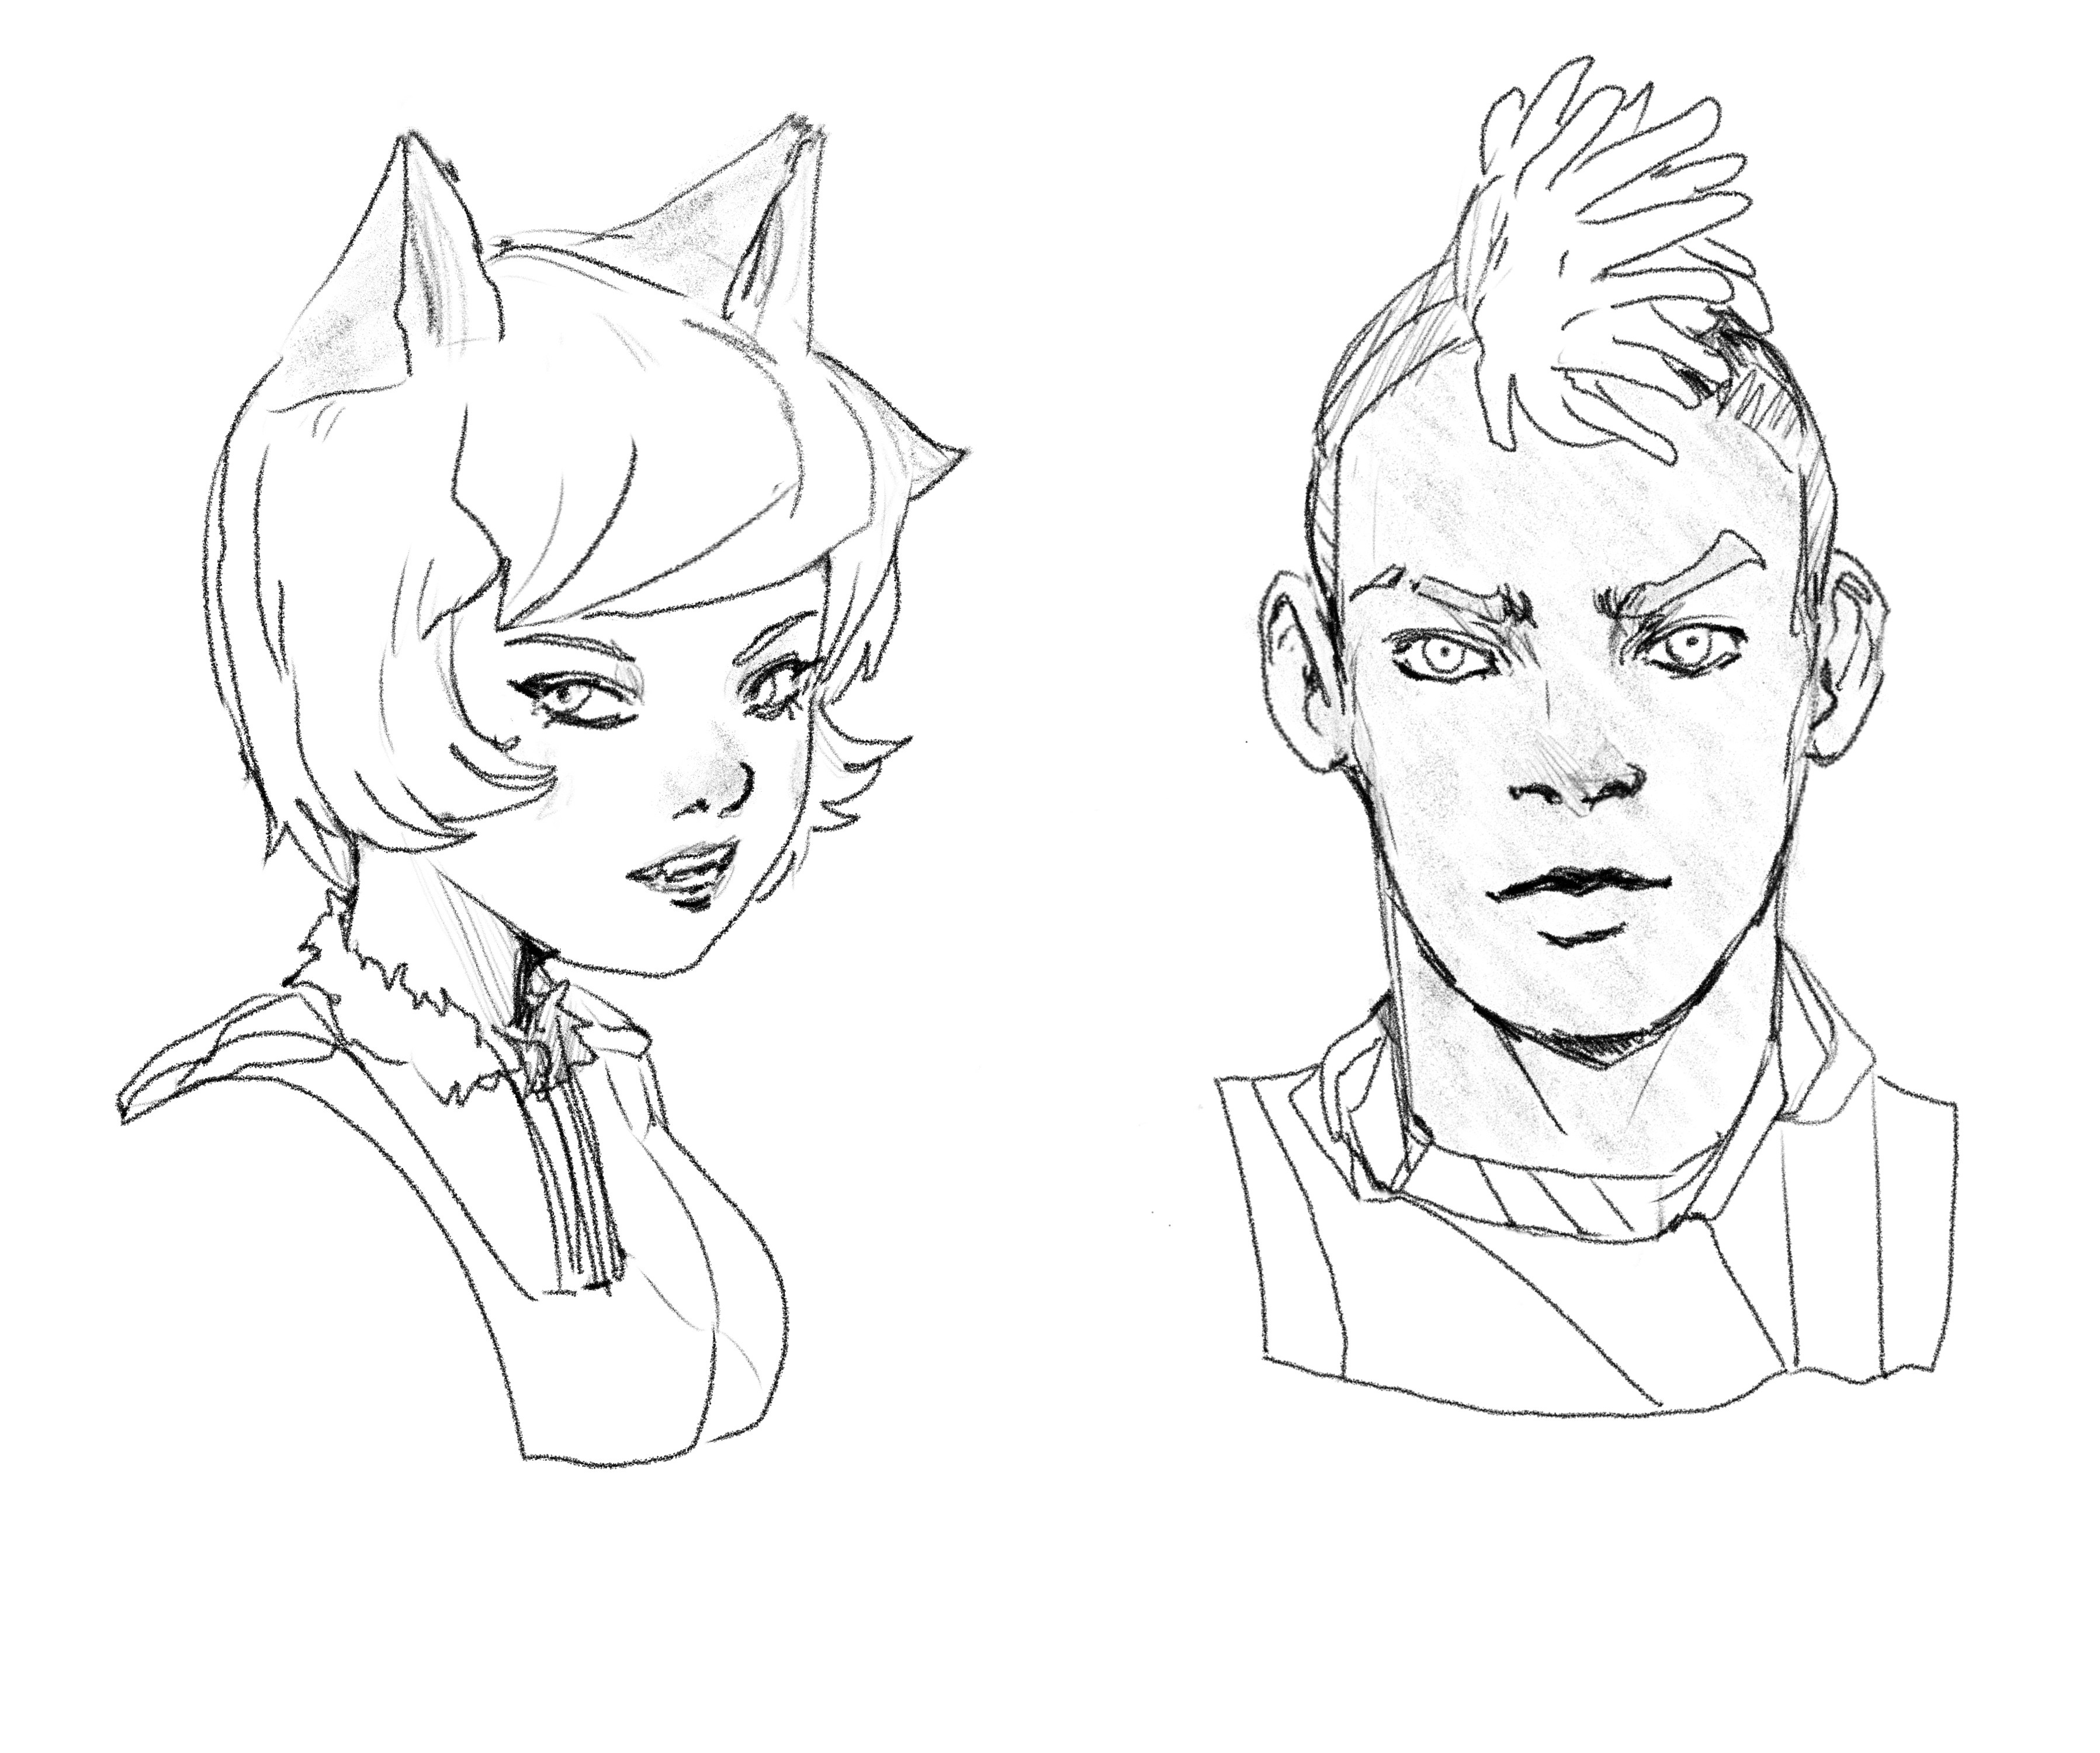 More Style Tests in Procreate - Cecelia and Balion